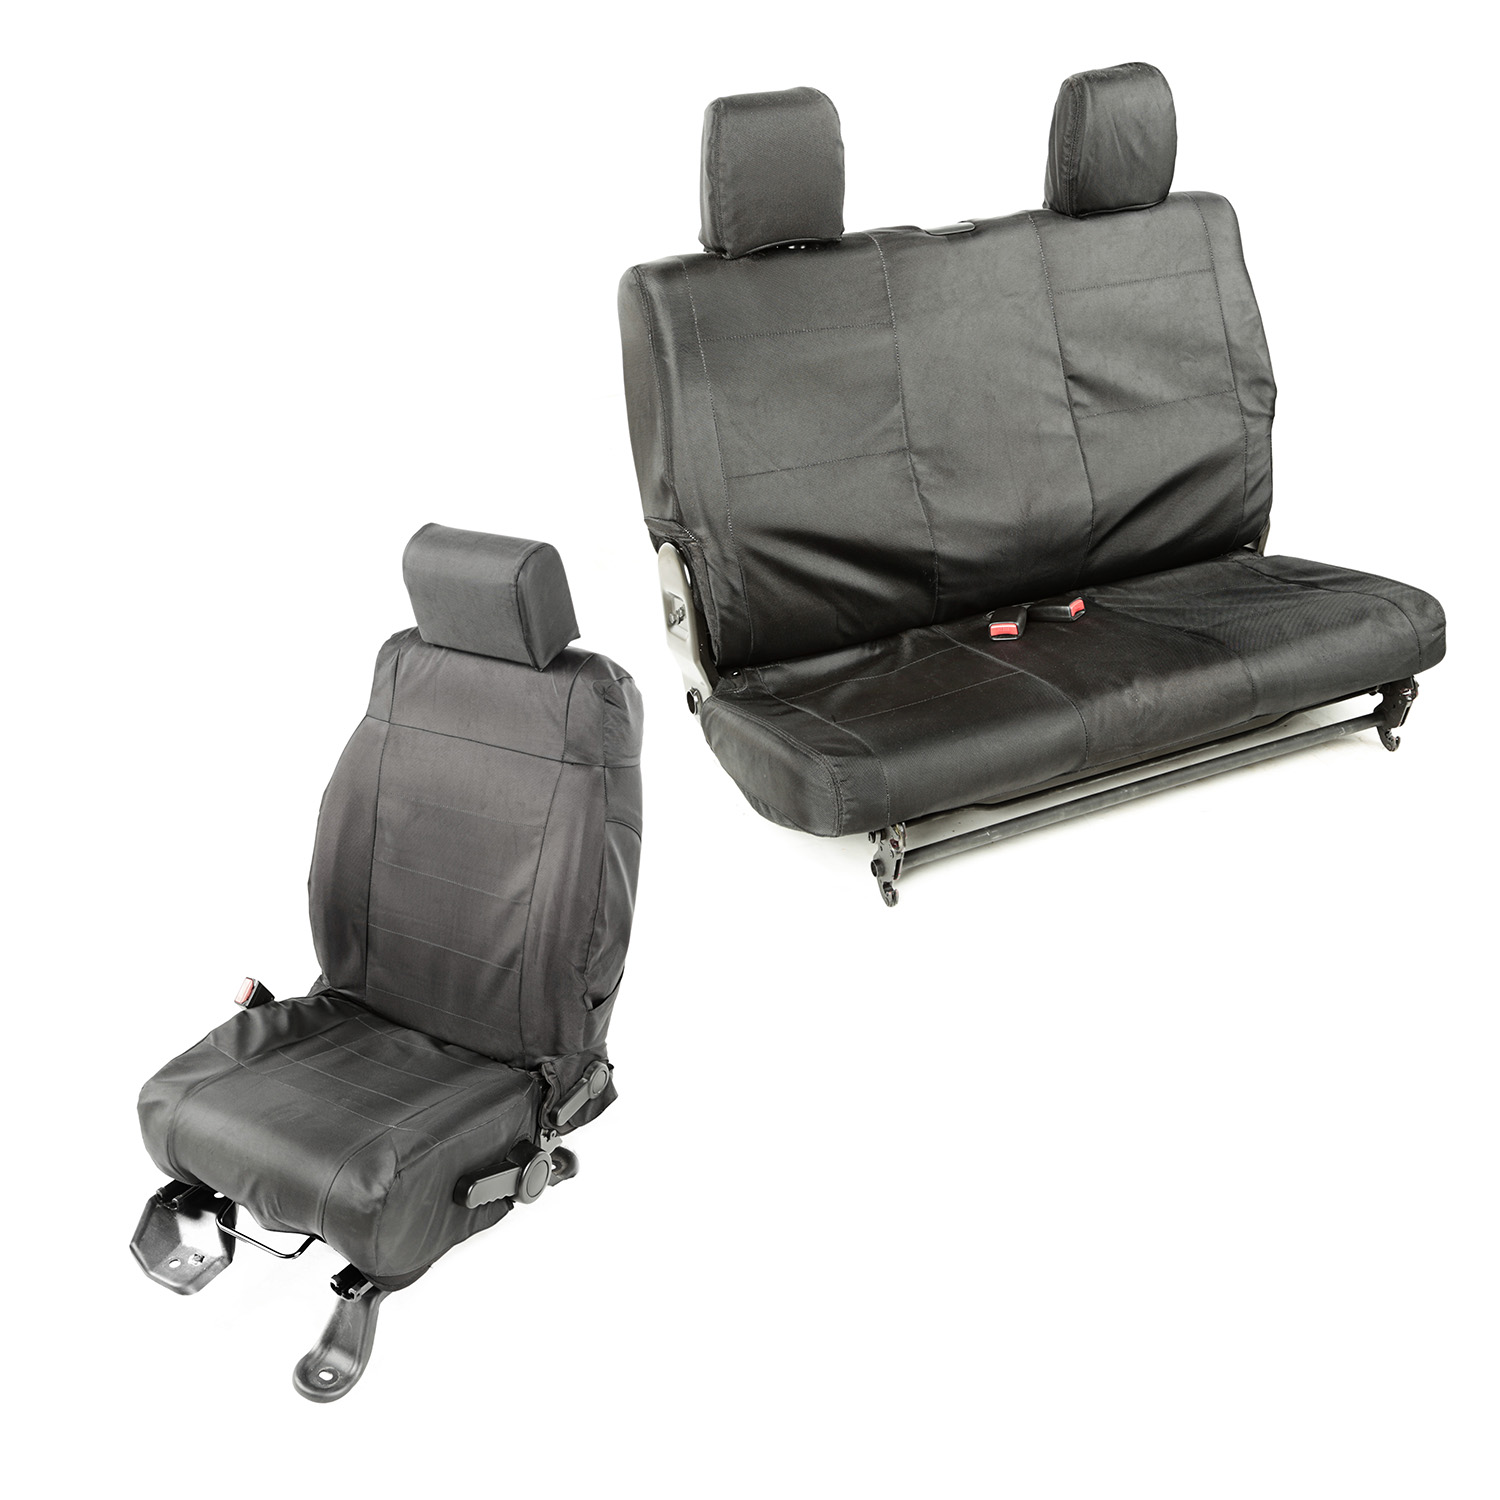 Rugged Ridge Ballistic Seat Cover Set Black - JK 2dr 2007-10